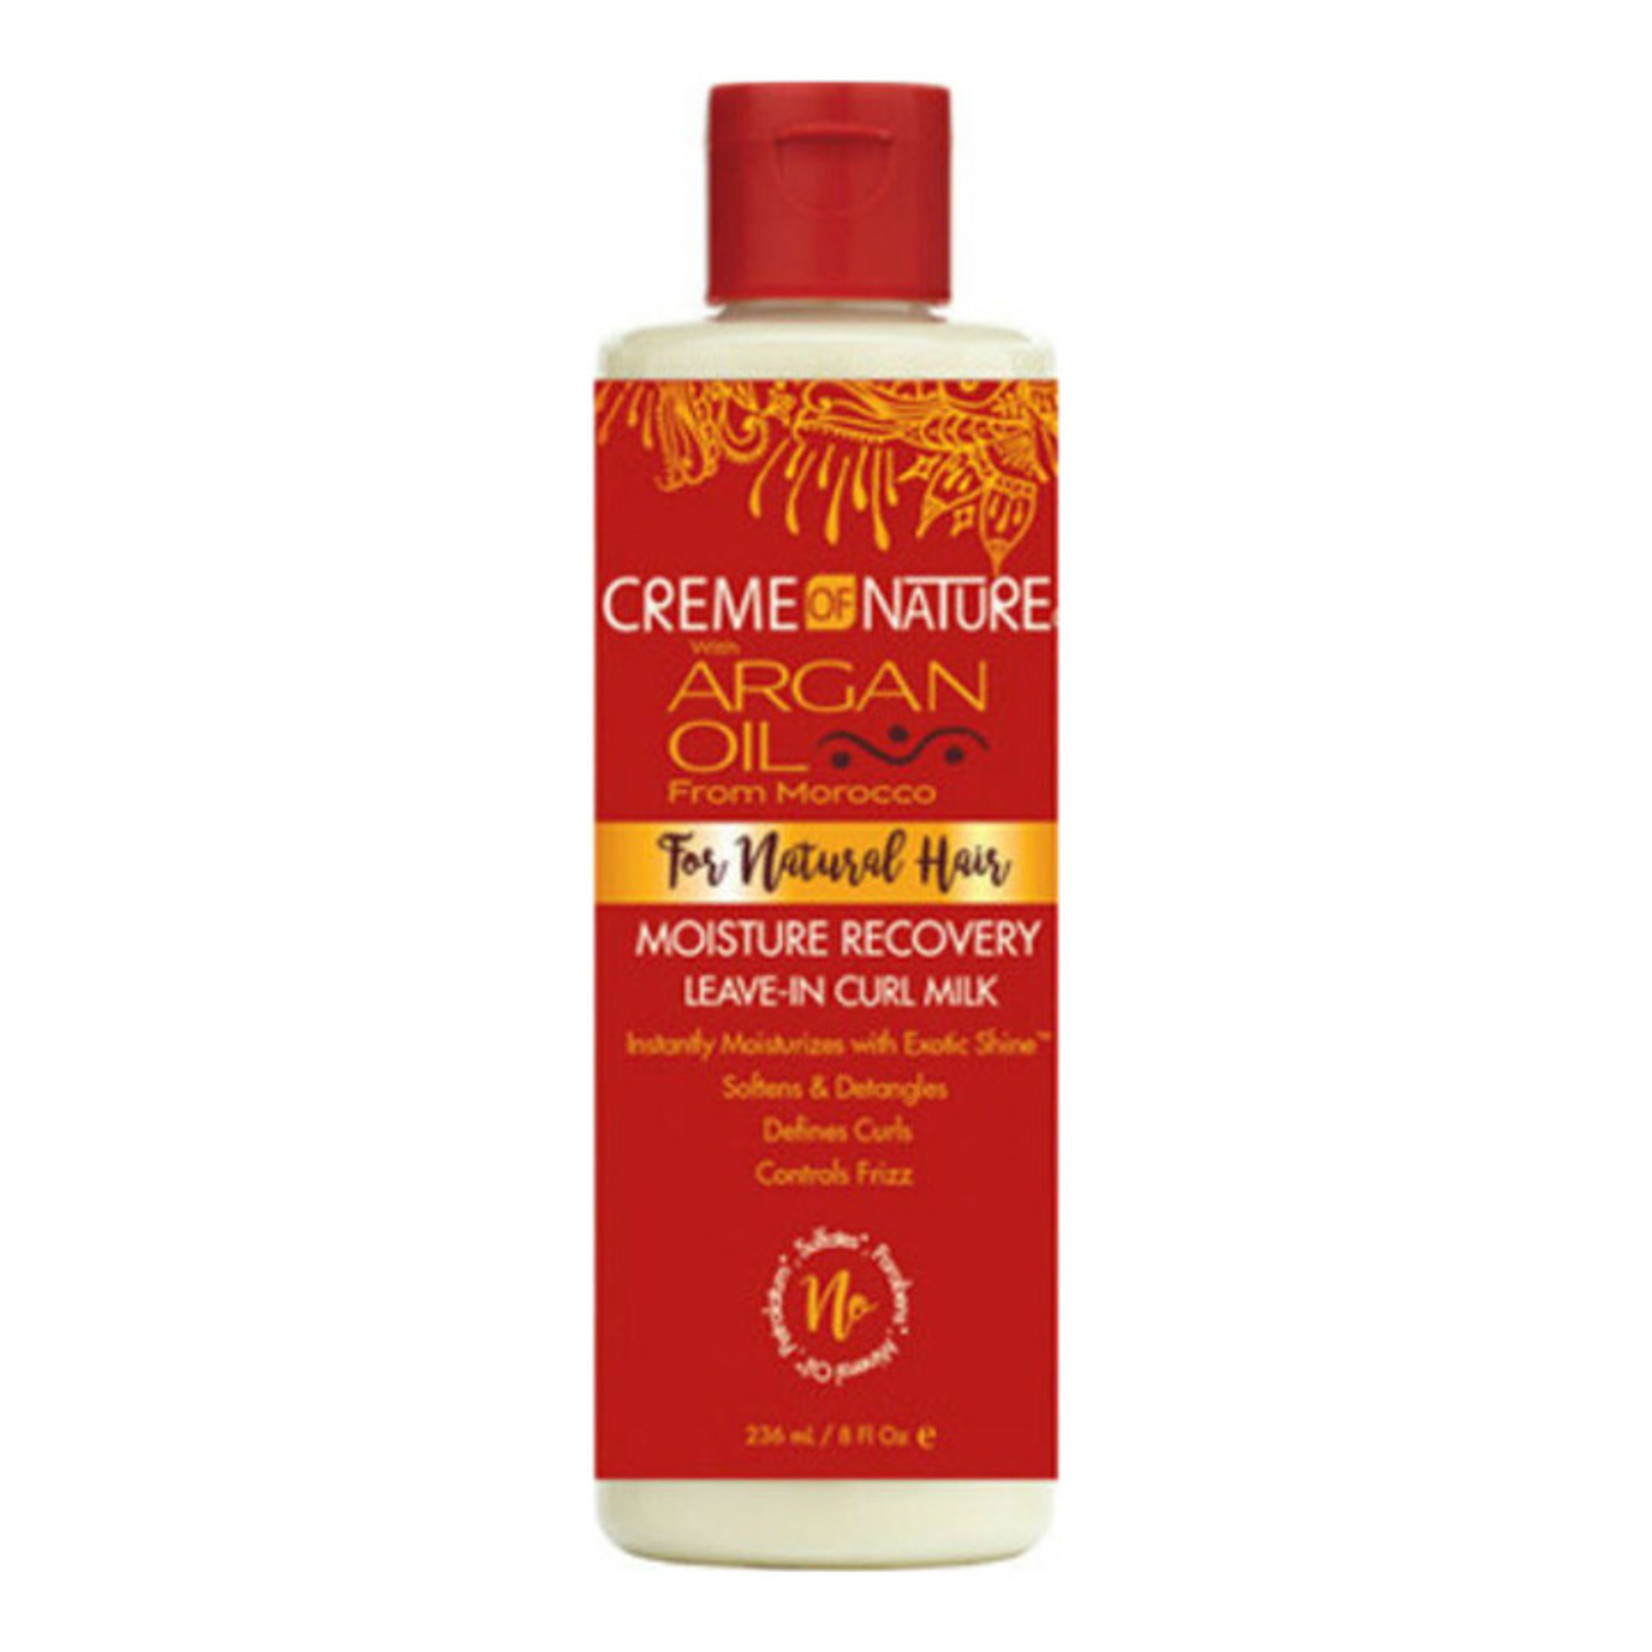 CREME OF NATURE CREME OF NATURE ARGAN OIL MOISTURE RECOVERY LEAVE IN CURL MILK [8OZ]